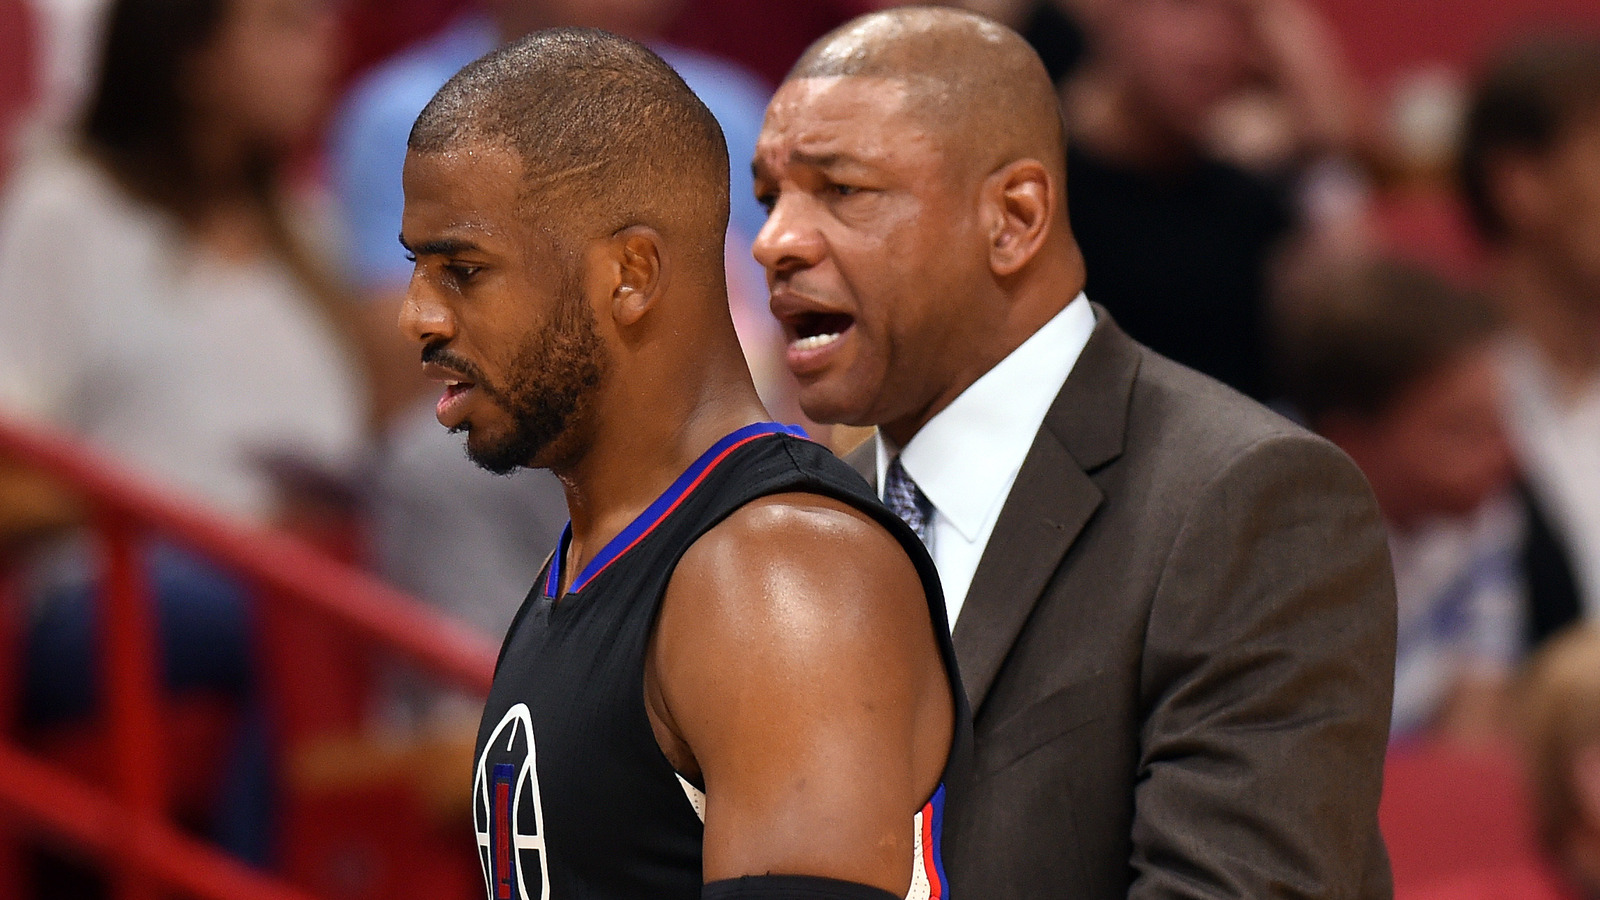 La clippers the impact of blake griffins surgery on the team foxsports com - La Clippers The Impact Of Blake Griffins Surgery On The Team Foxsports Com 64